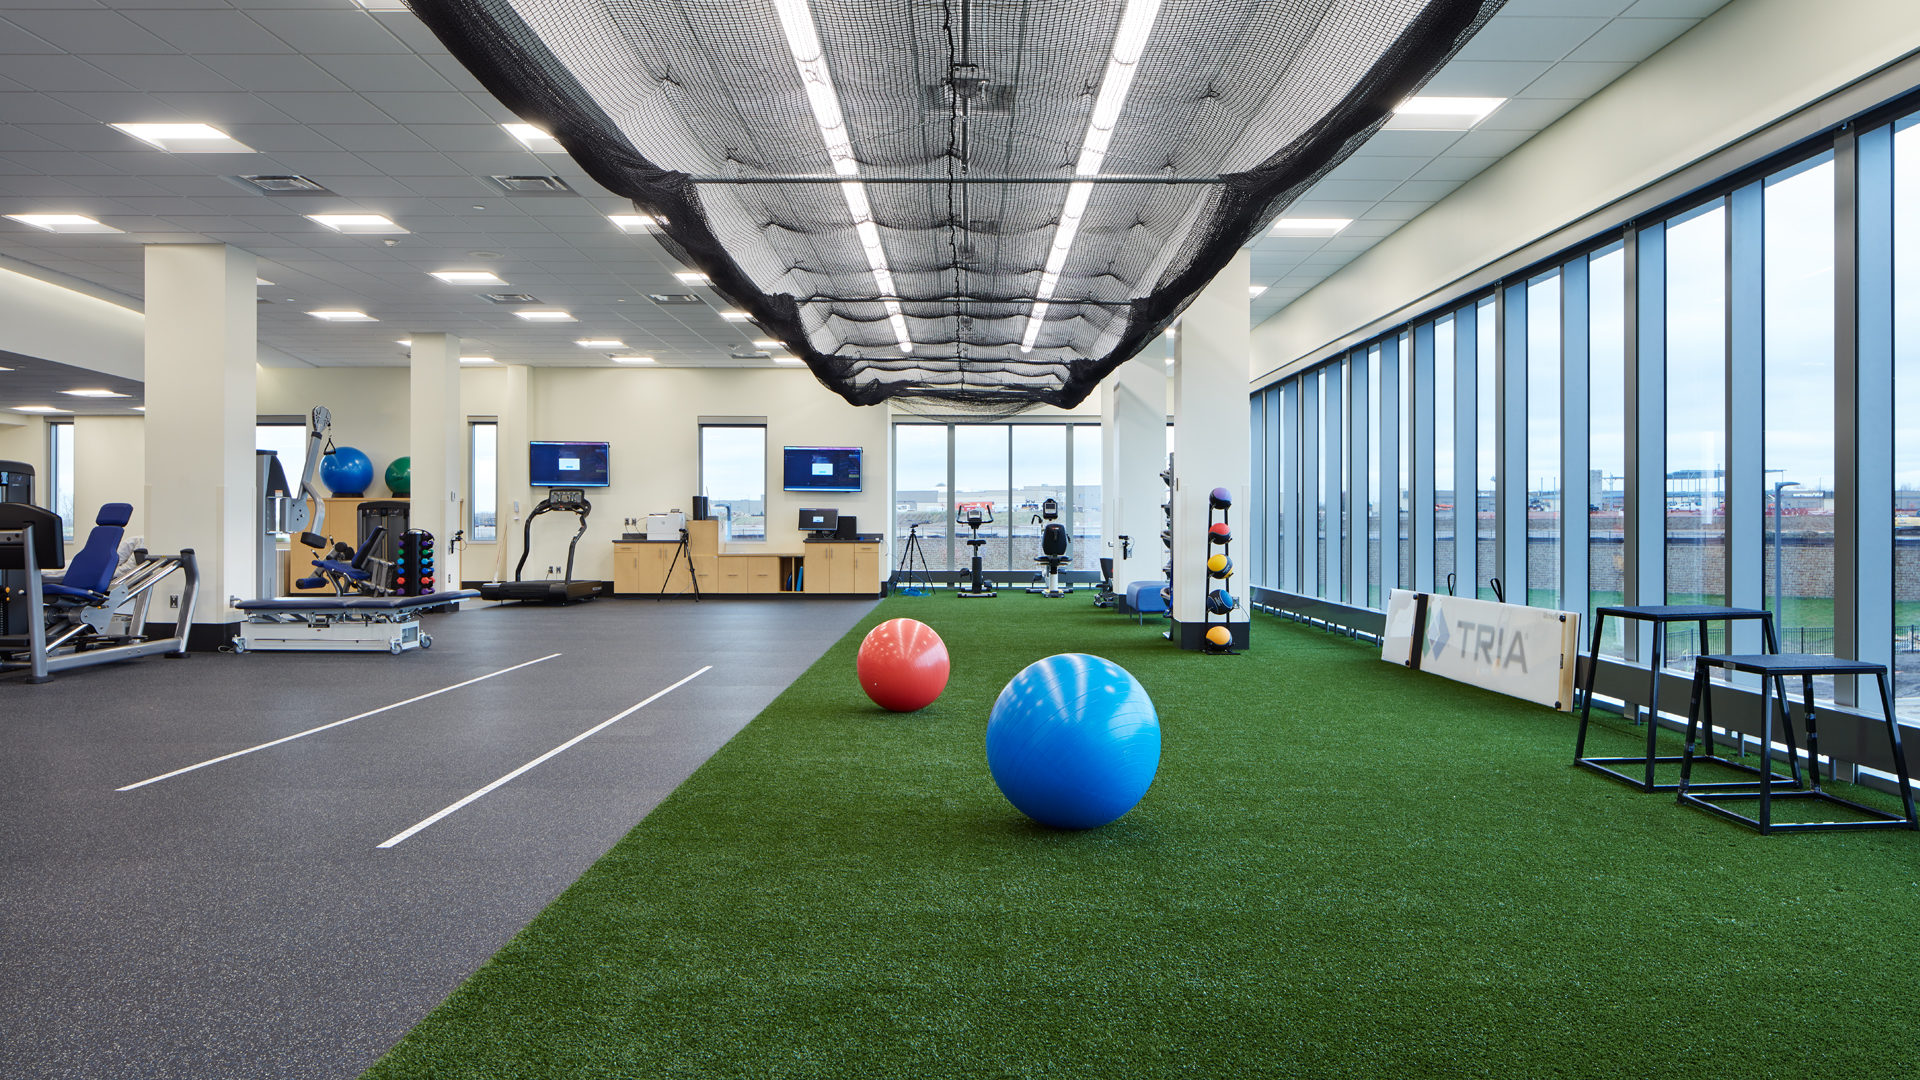 TRIA Orthopedic Center CityPlace Woodbury MN Healthcare Interior Physical Therapy Gym